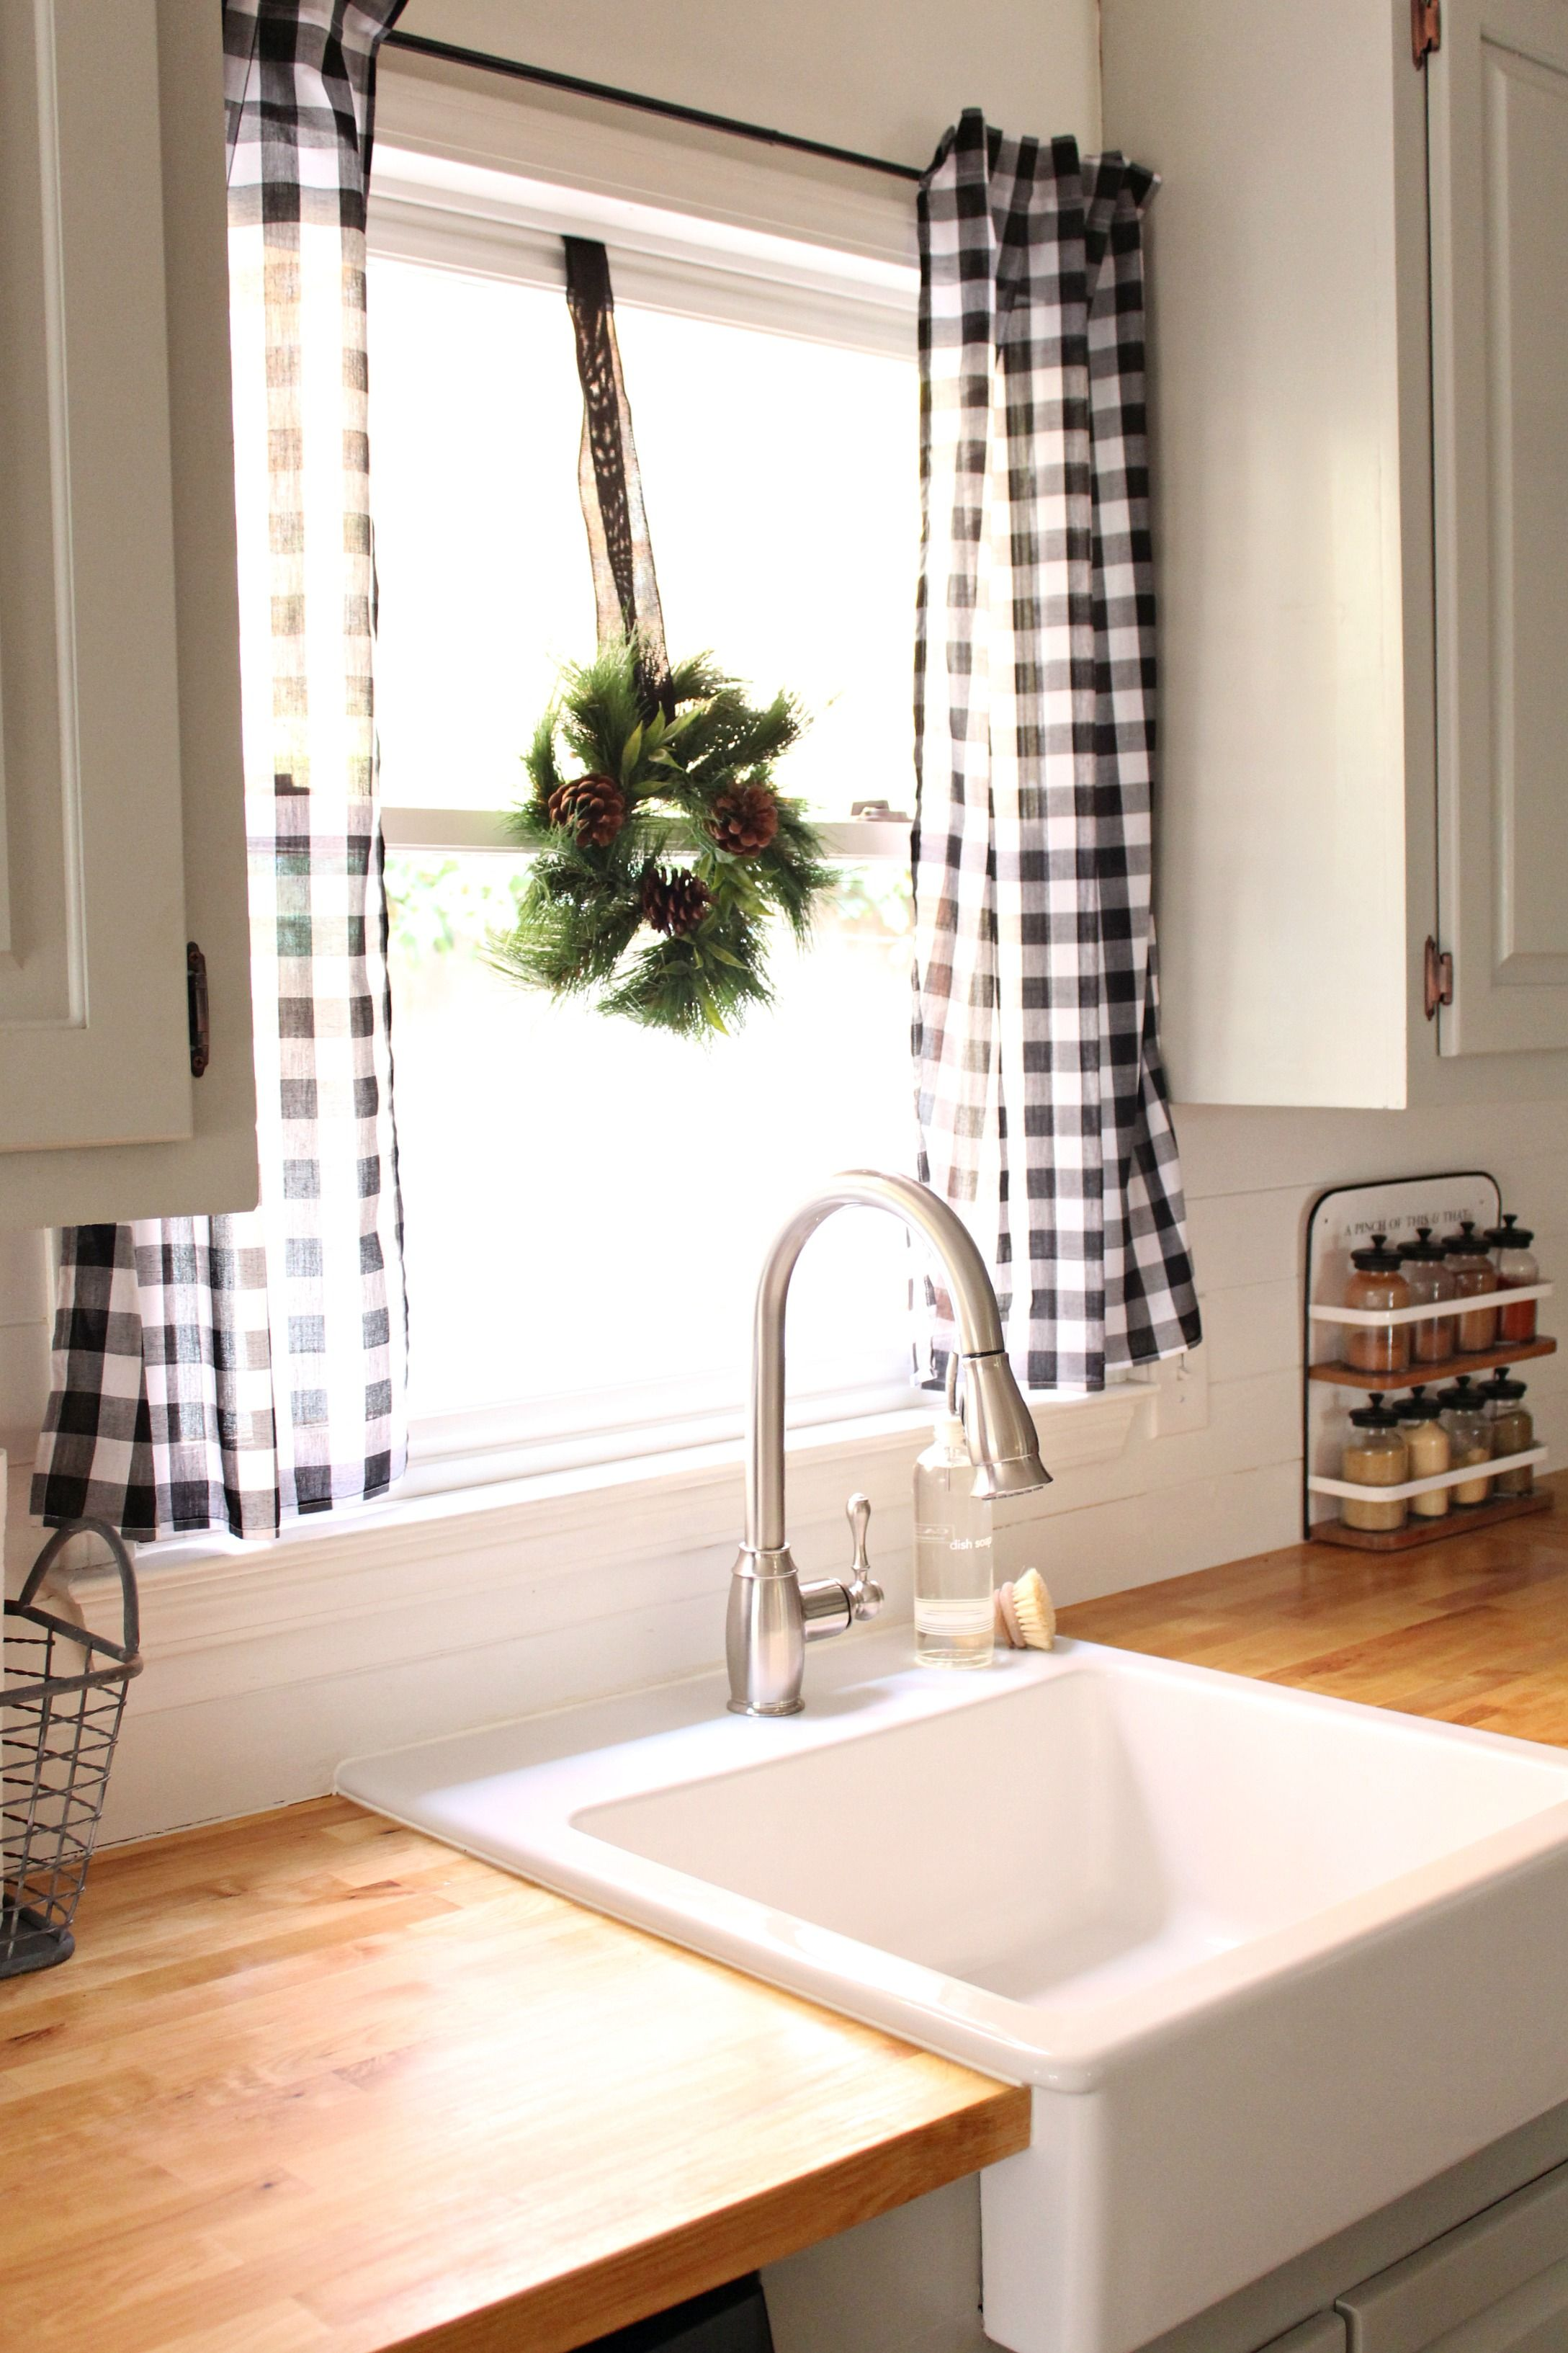 A Very Merry Christmas Home Tour Farmhouse Kitchen Curtains